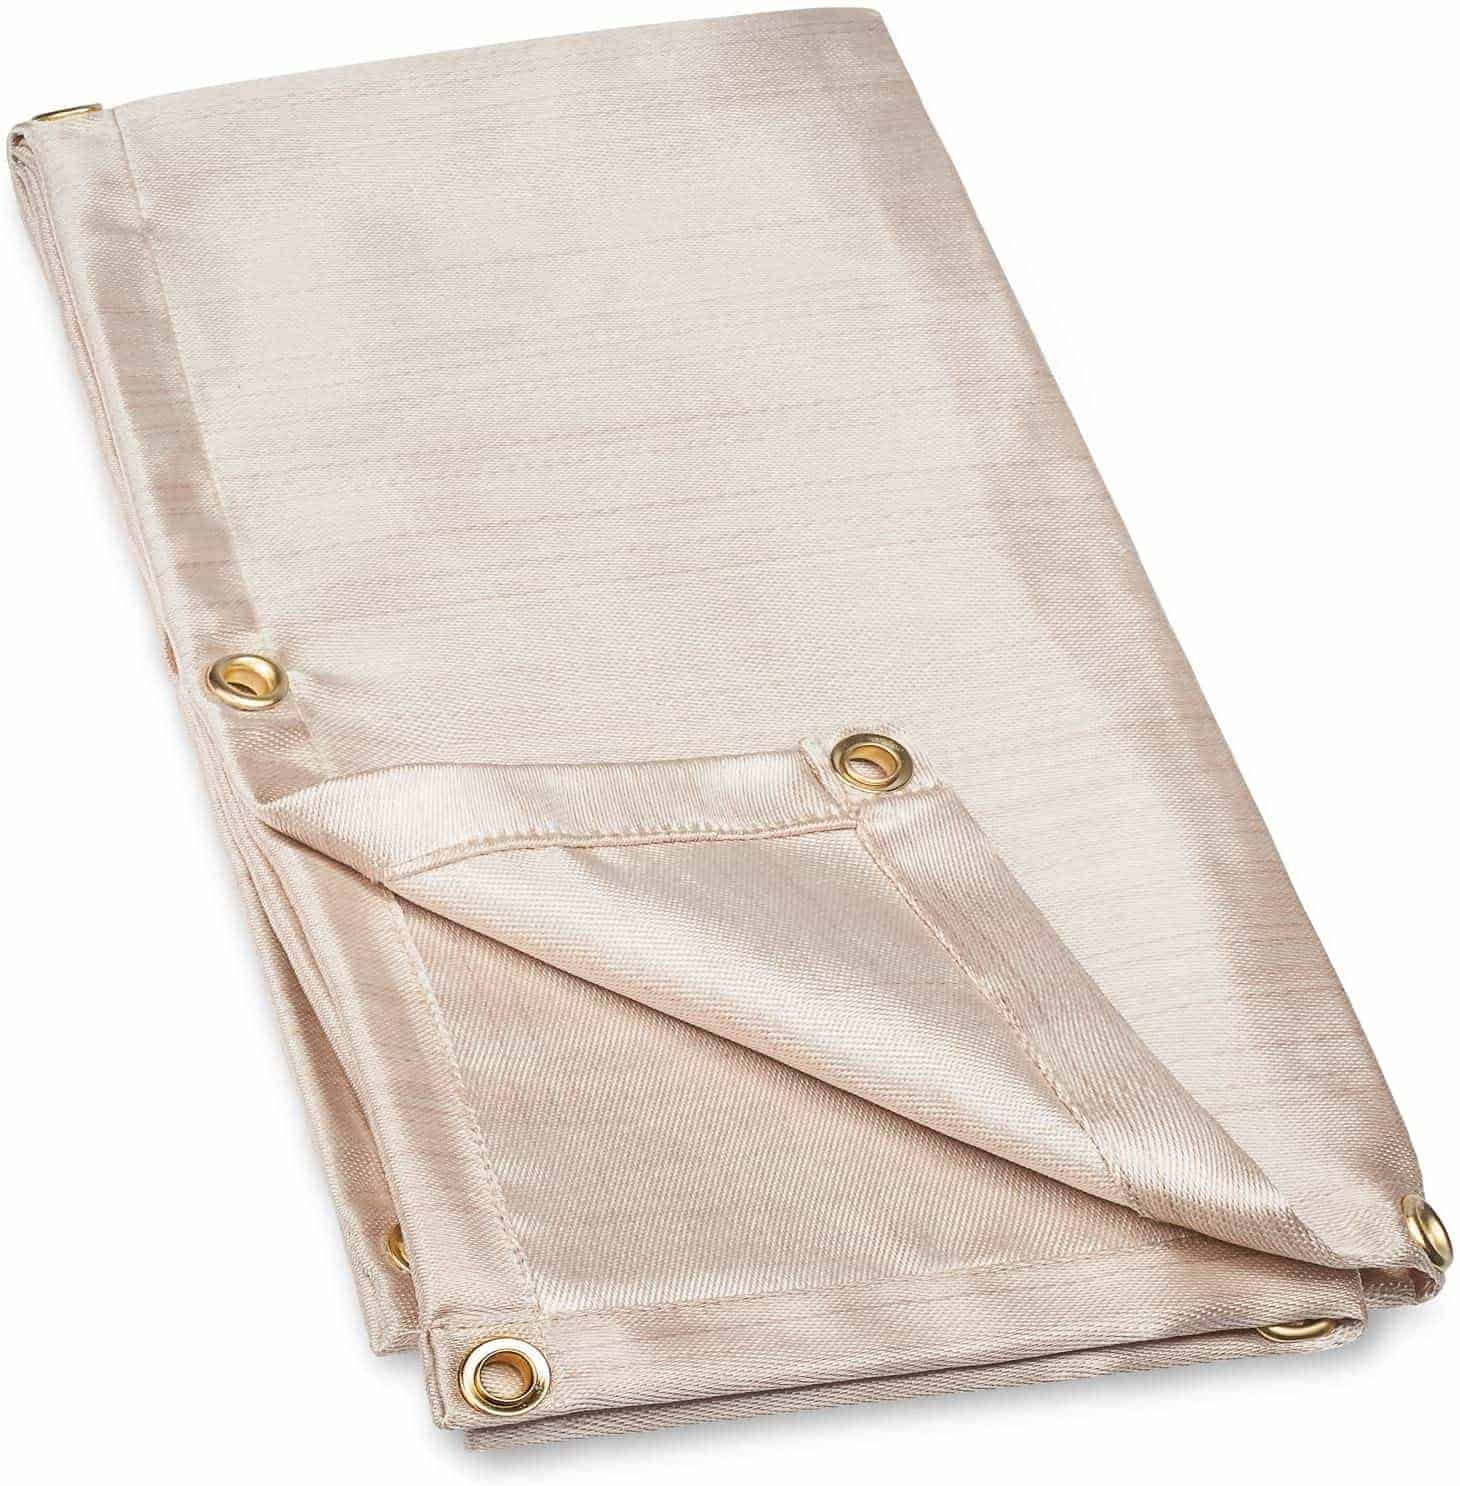 Neiko 10908A Fiberglass Welding Blanket and Cover